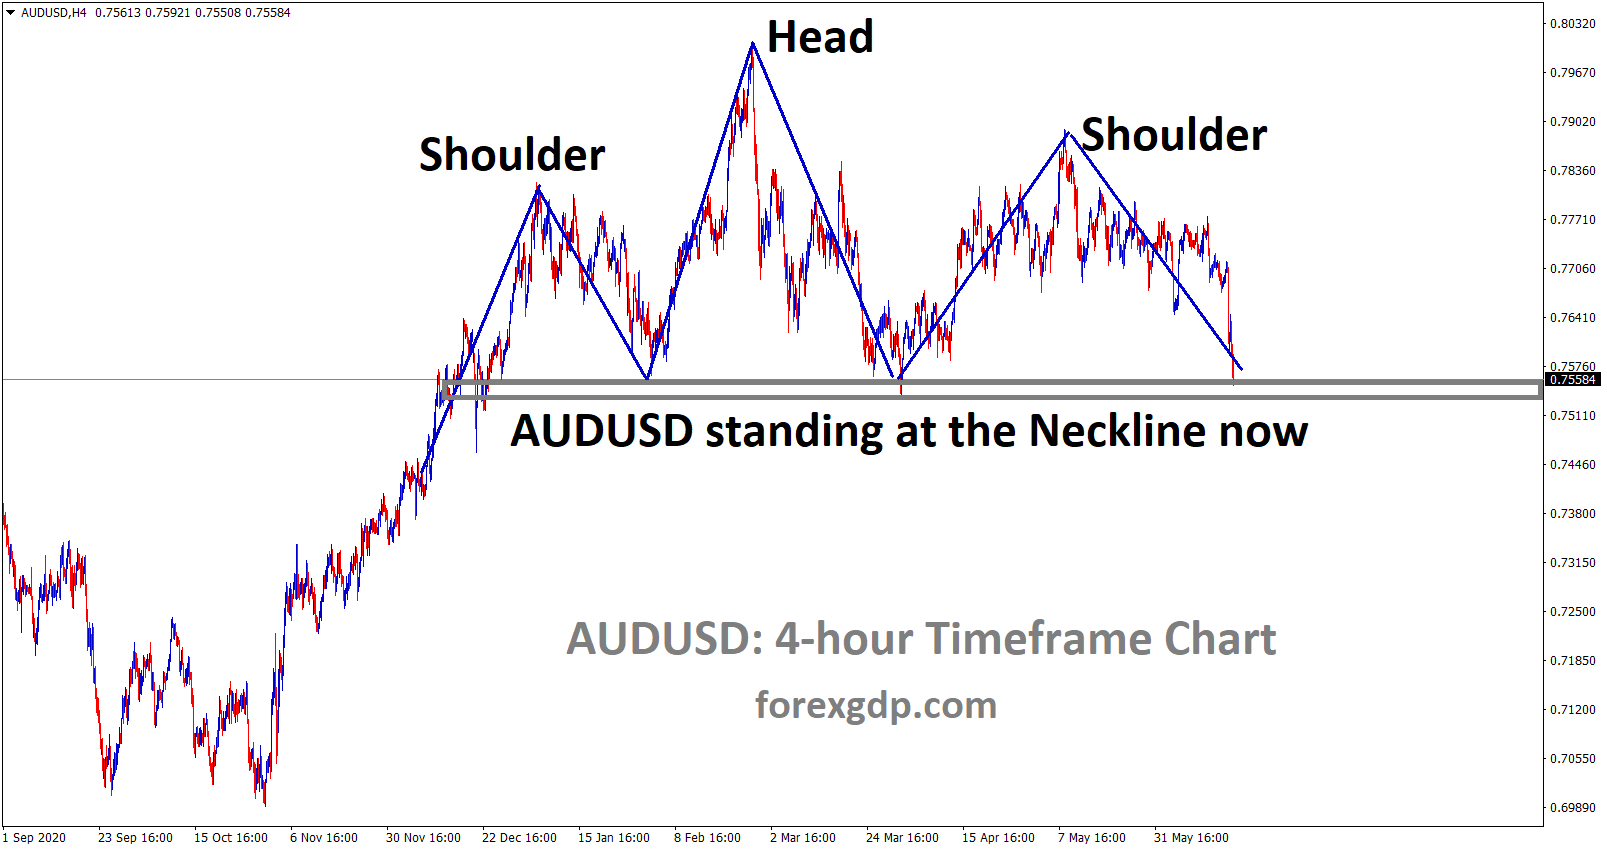 Head and Shoulder pattern formed in AUDUSD. now price reached the neckline of the pattern